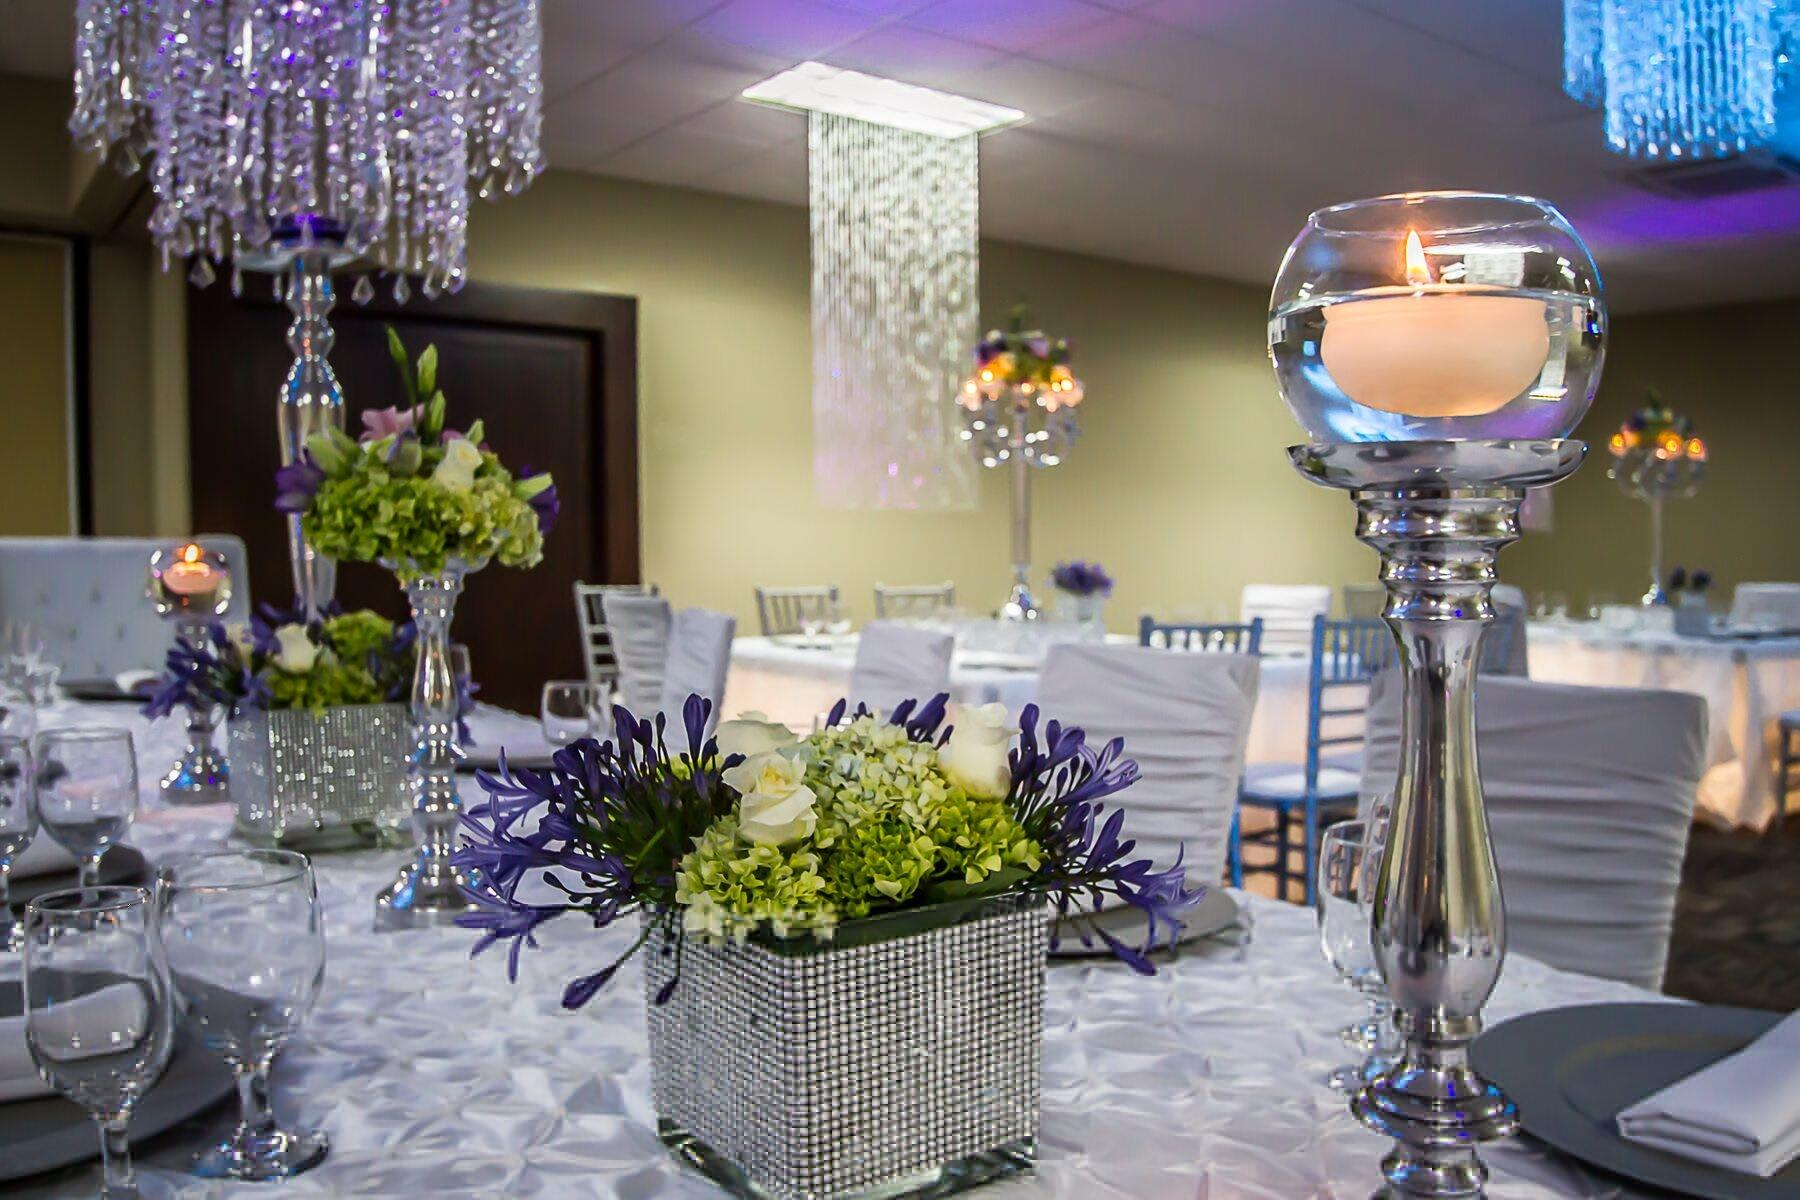 Floral centerpiece and candlesticks on table set for wedding rec